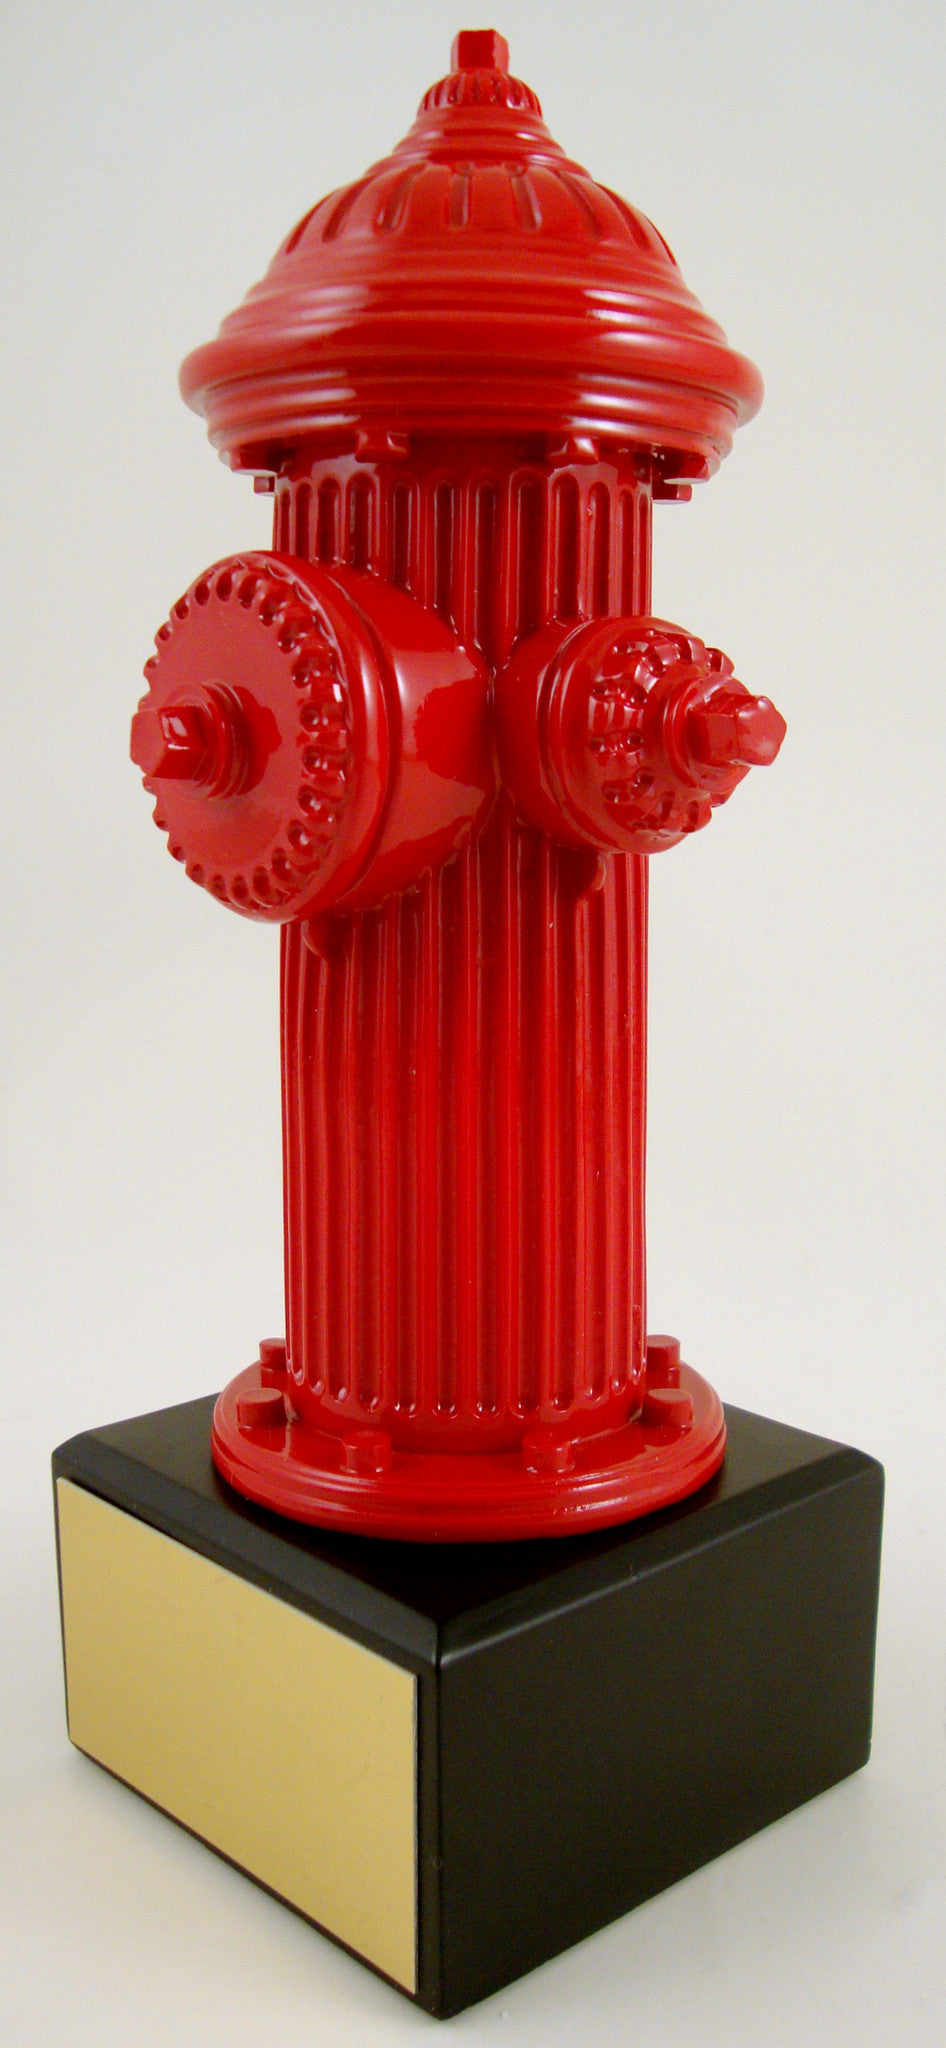 Fire Hydrant Resin On Black Square Base-Trophy-Schoppy's Since 1921